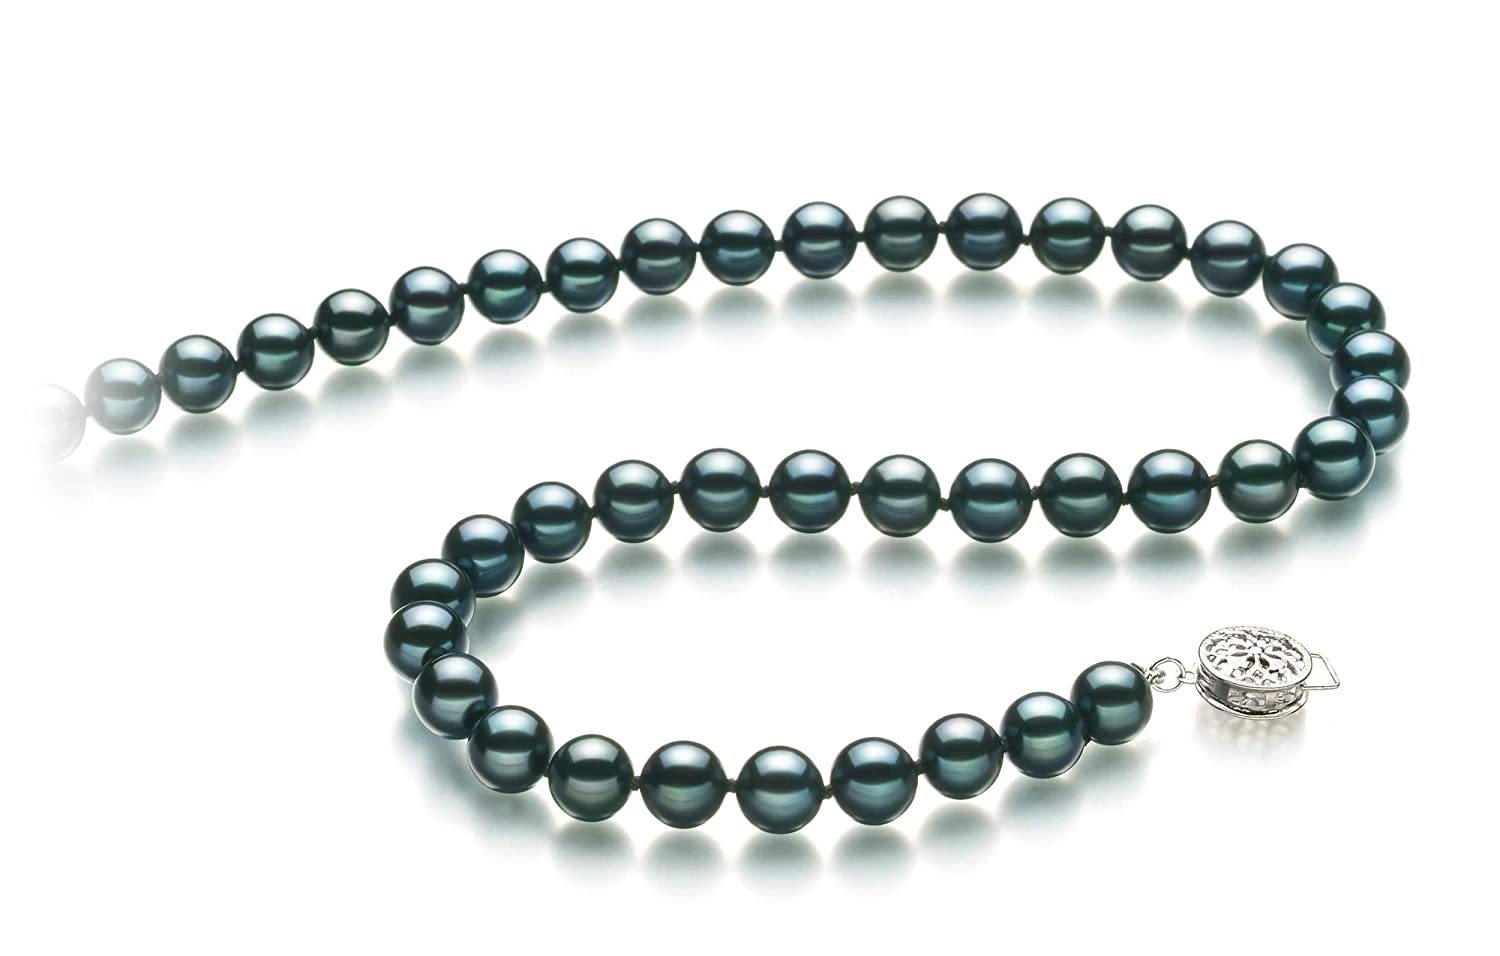 Black 6.5-7mm AA Quality Japanese Akoya 925 Sterling Silver Cultured Pearl Necklace For Women